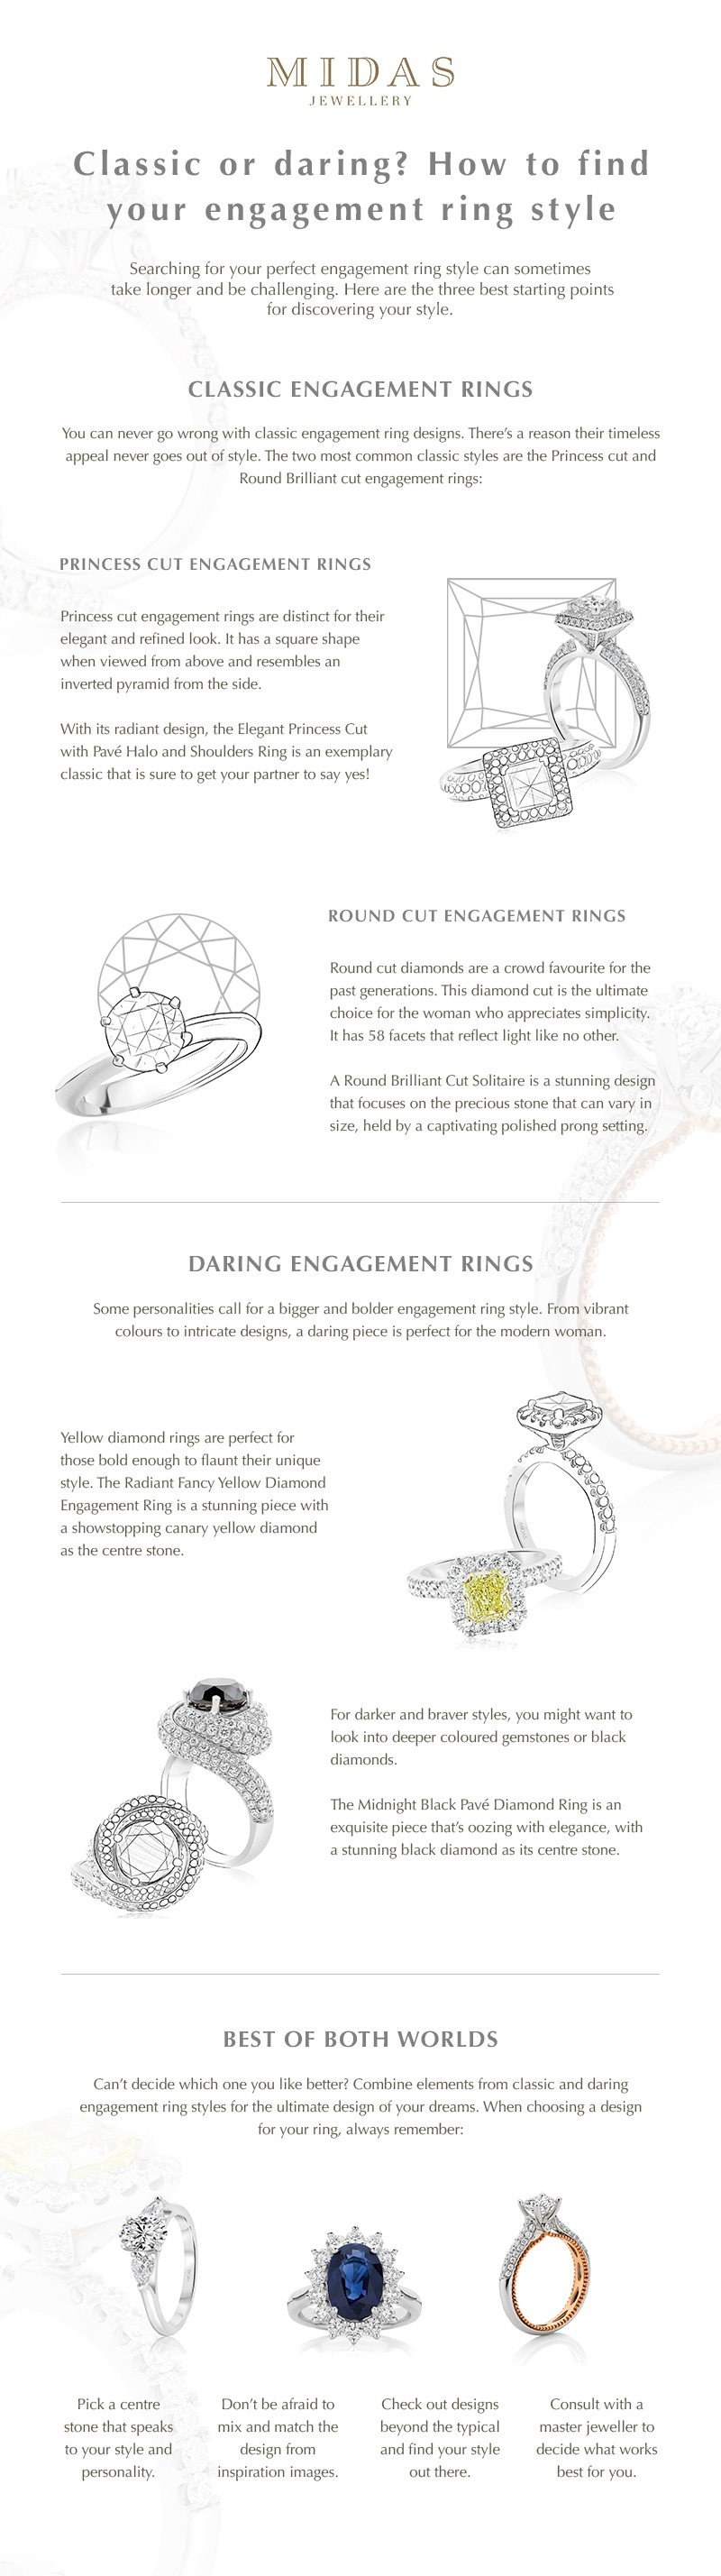 How to find your engagement ring style infographic